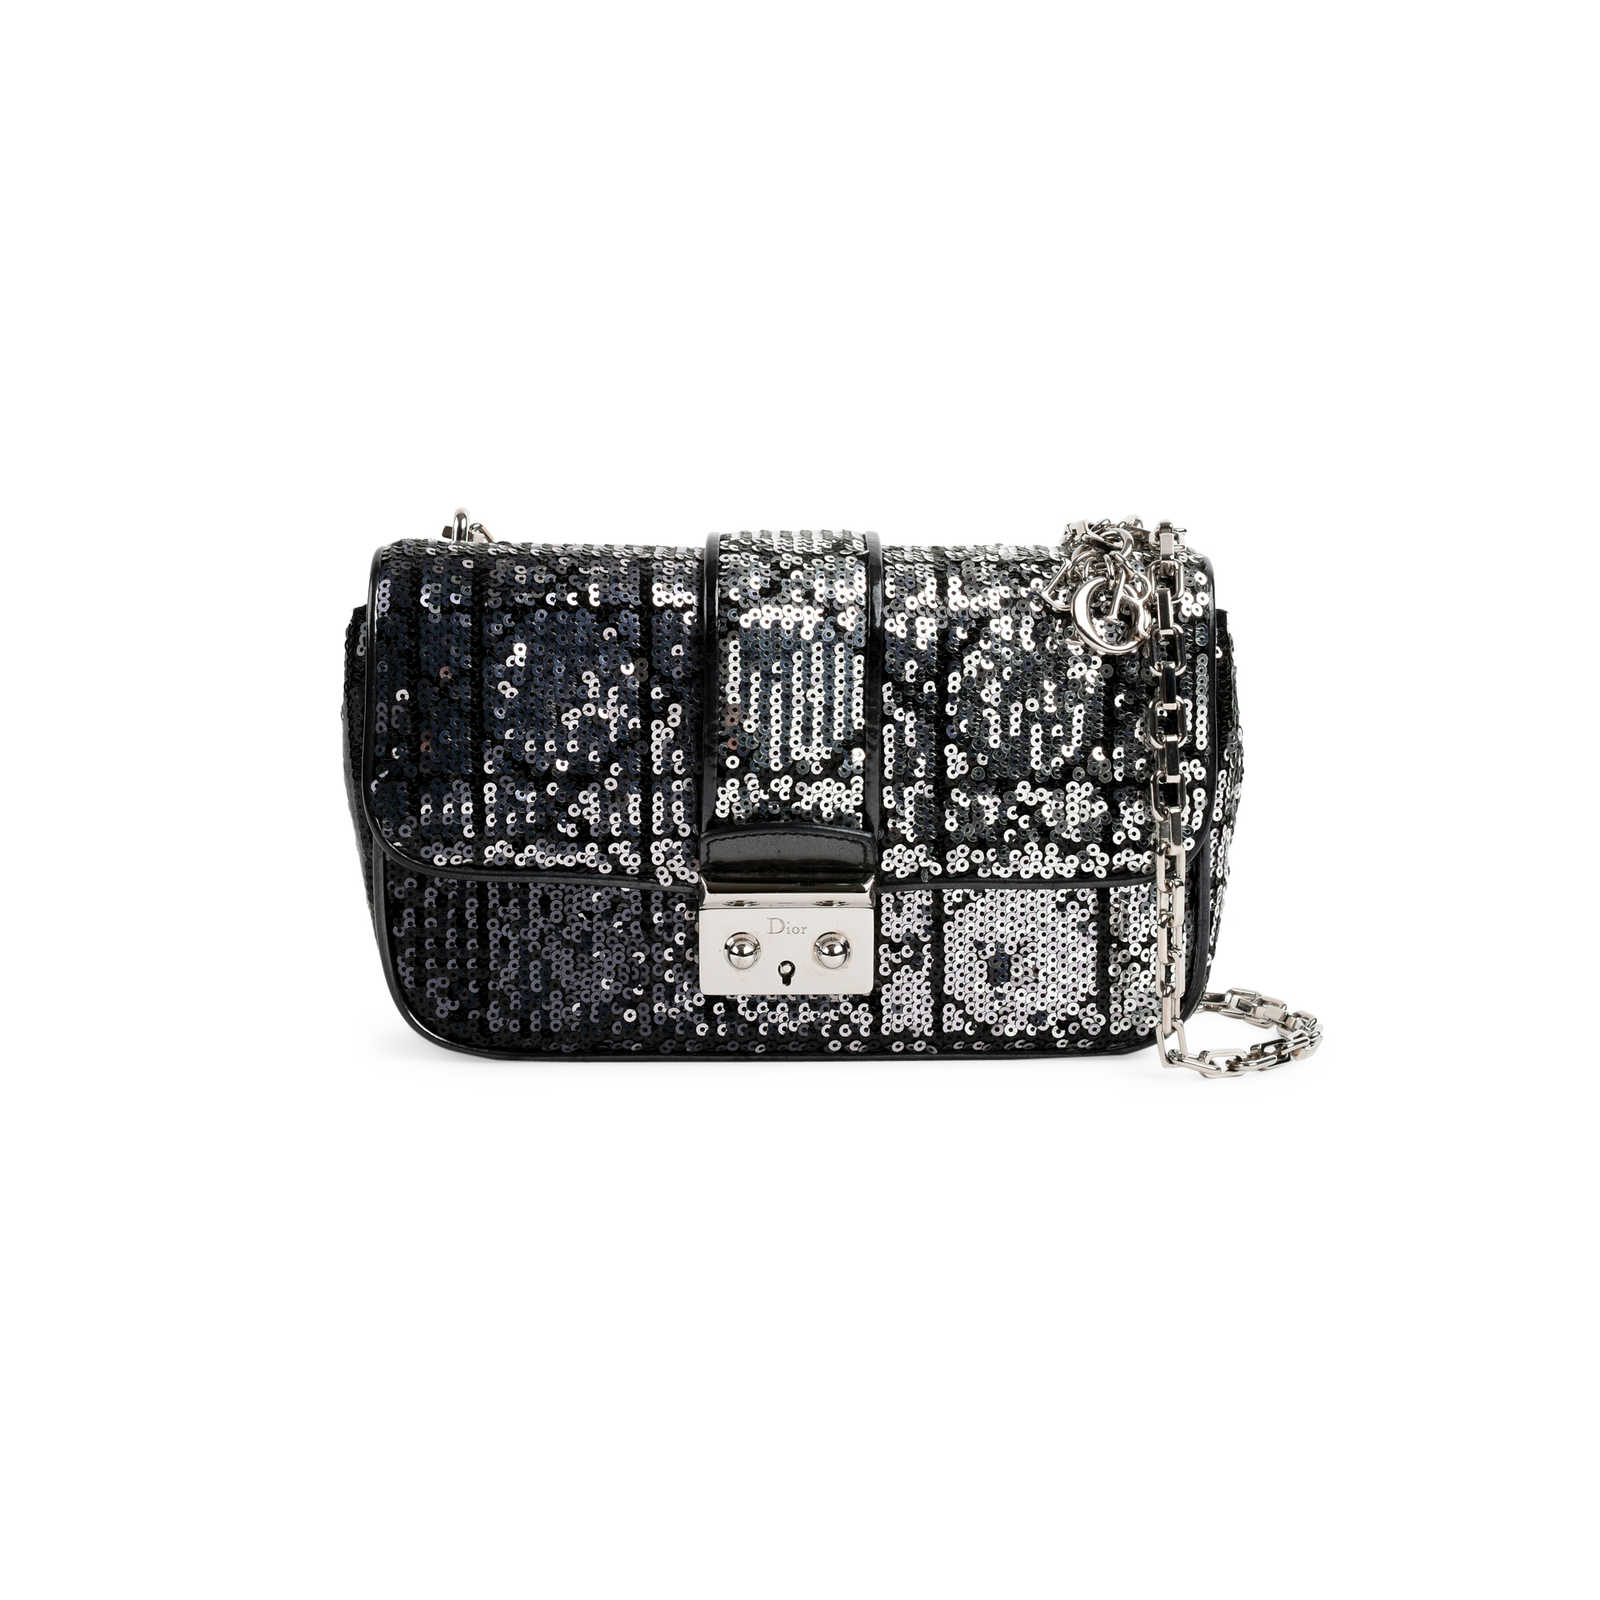 48758ad48c1 Authentic Pre Owned Christian Dior Sequin Cannage Miss Dior Bag  (PSS-491-00006 ...